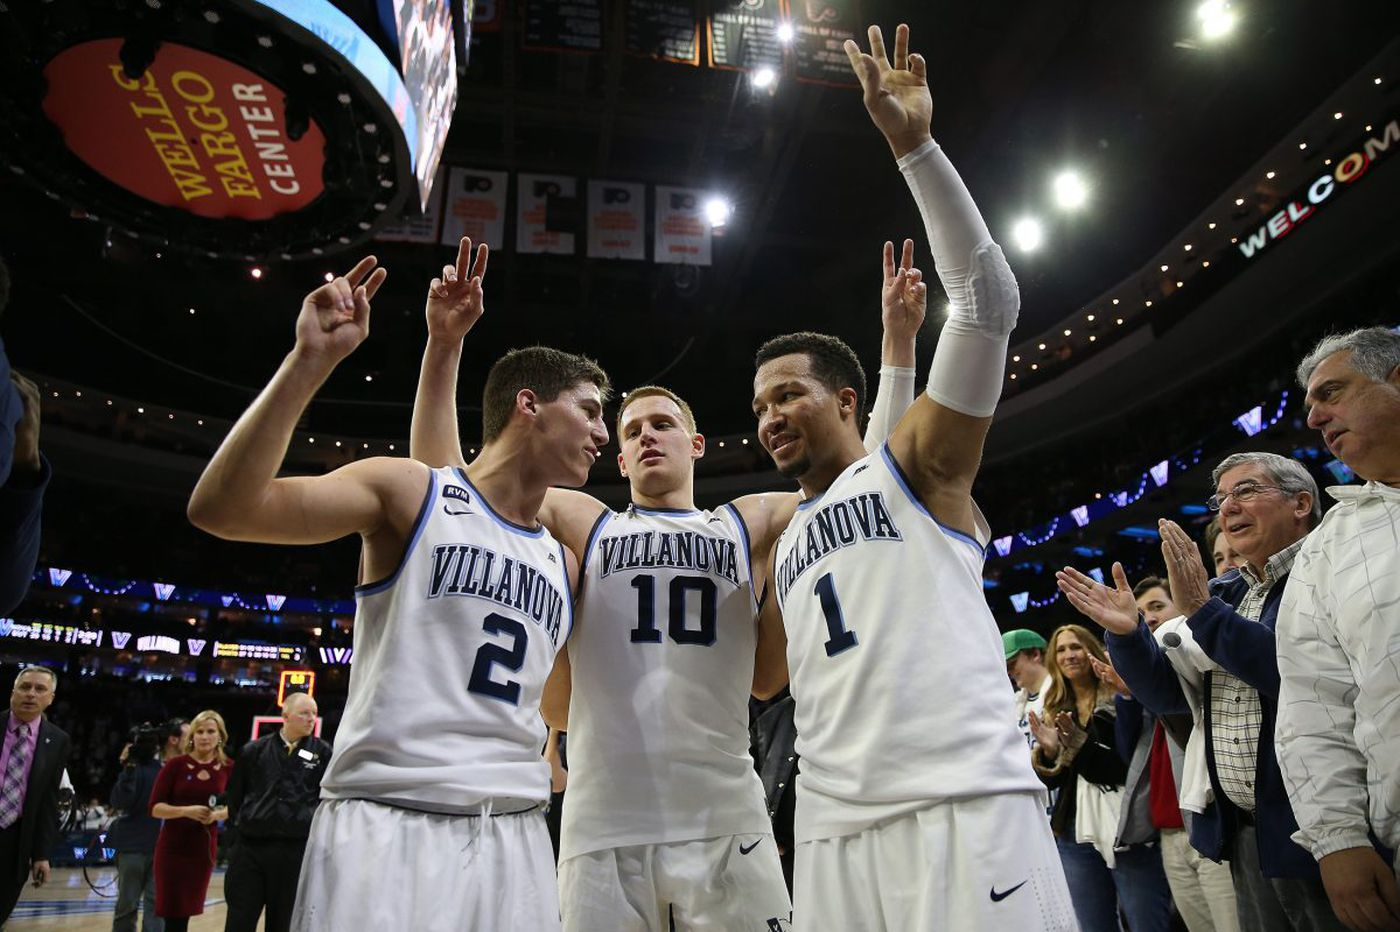 Big East tournament preview: What to watch for in Villanova's title quest